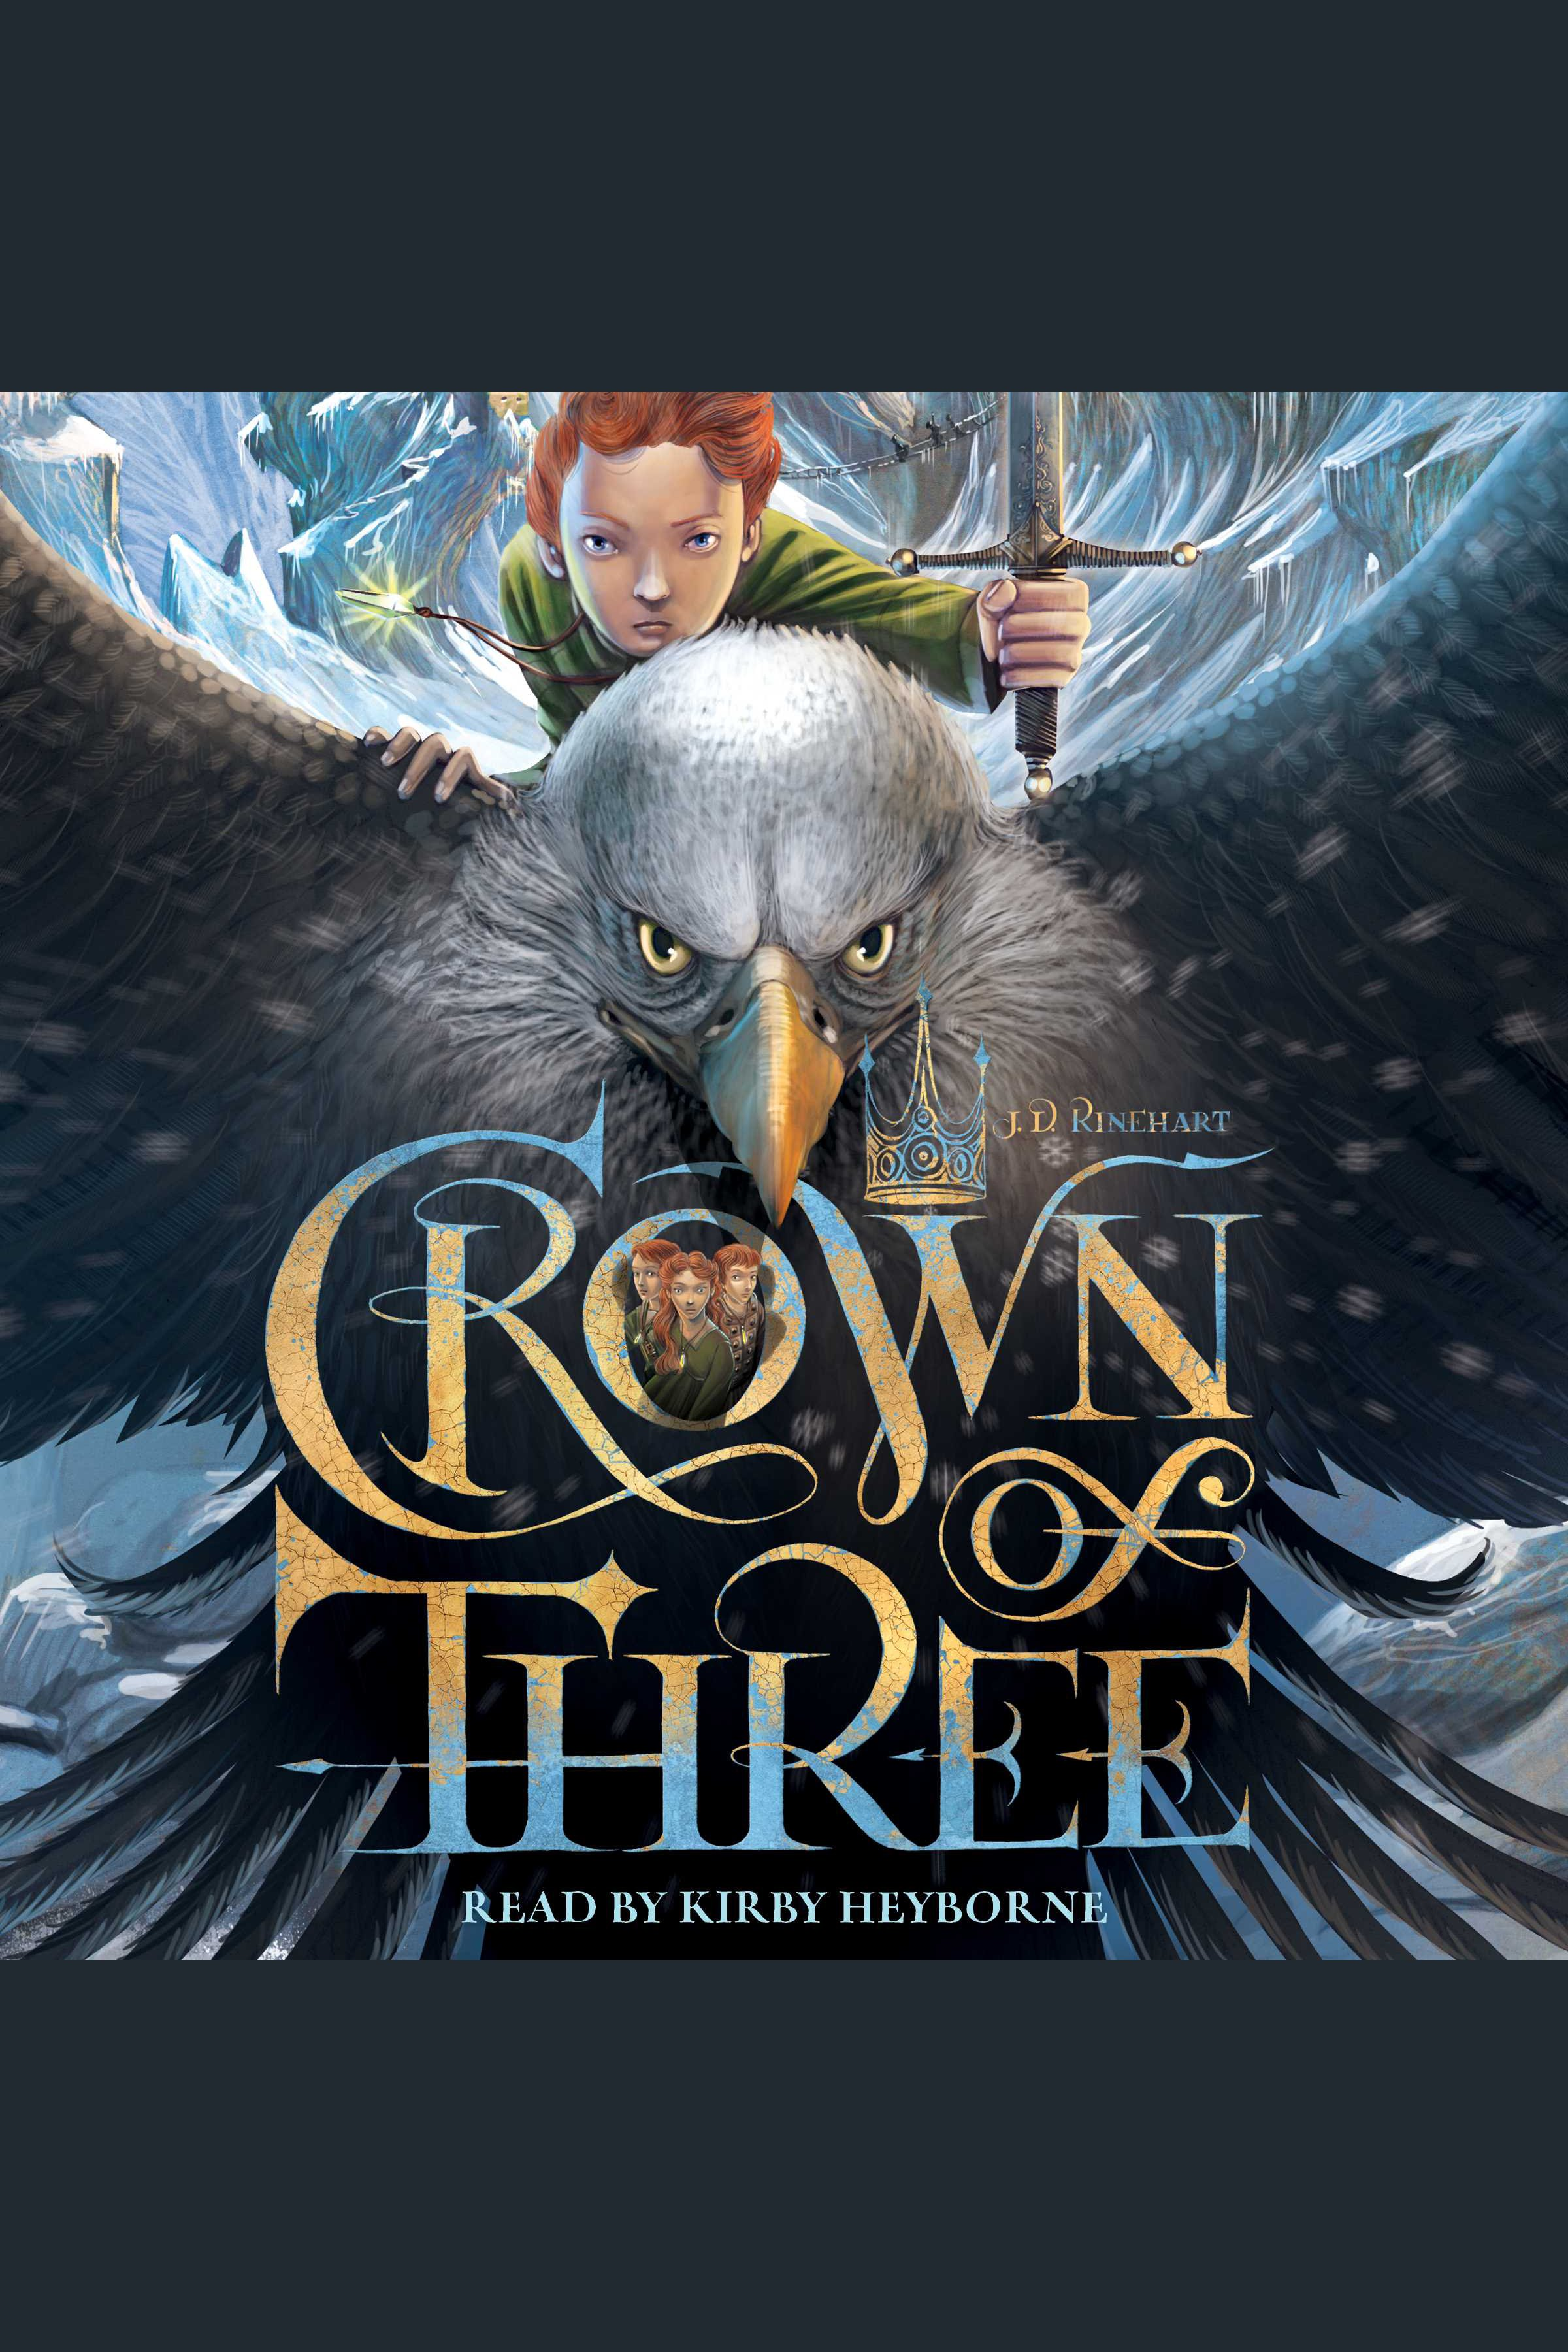 Crown of three cover image